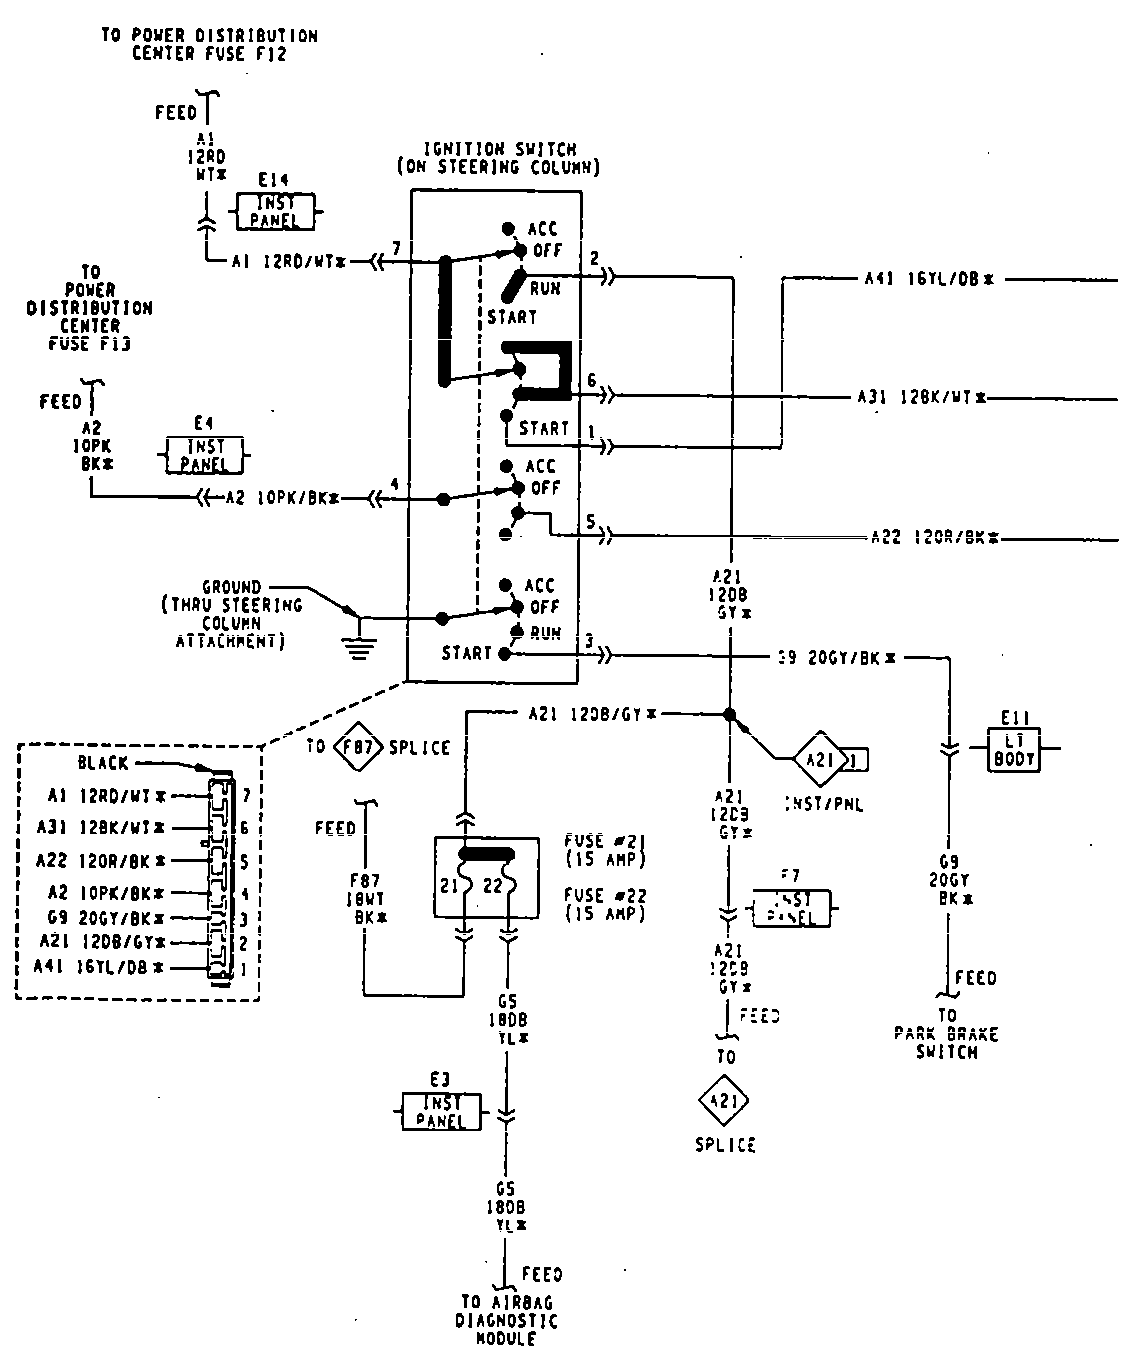 a8139a4a-d7d4-4b6c-a5dd-cb853e206f75_ignition switch.png